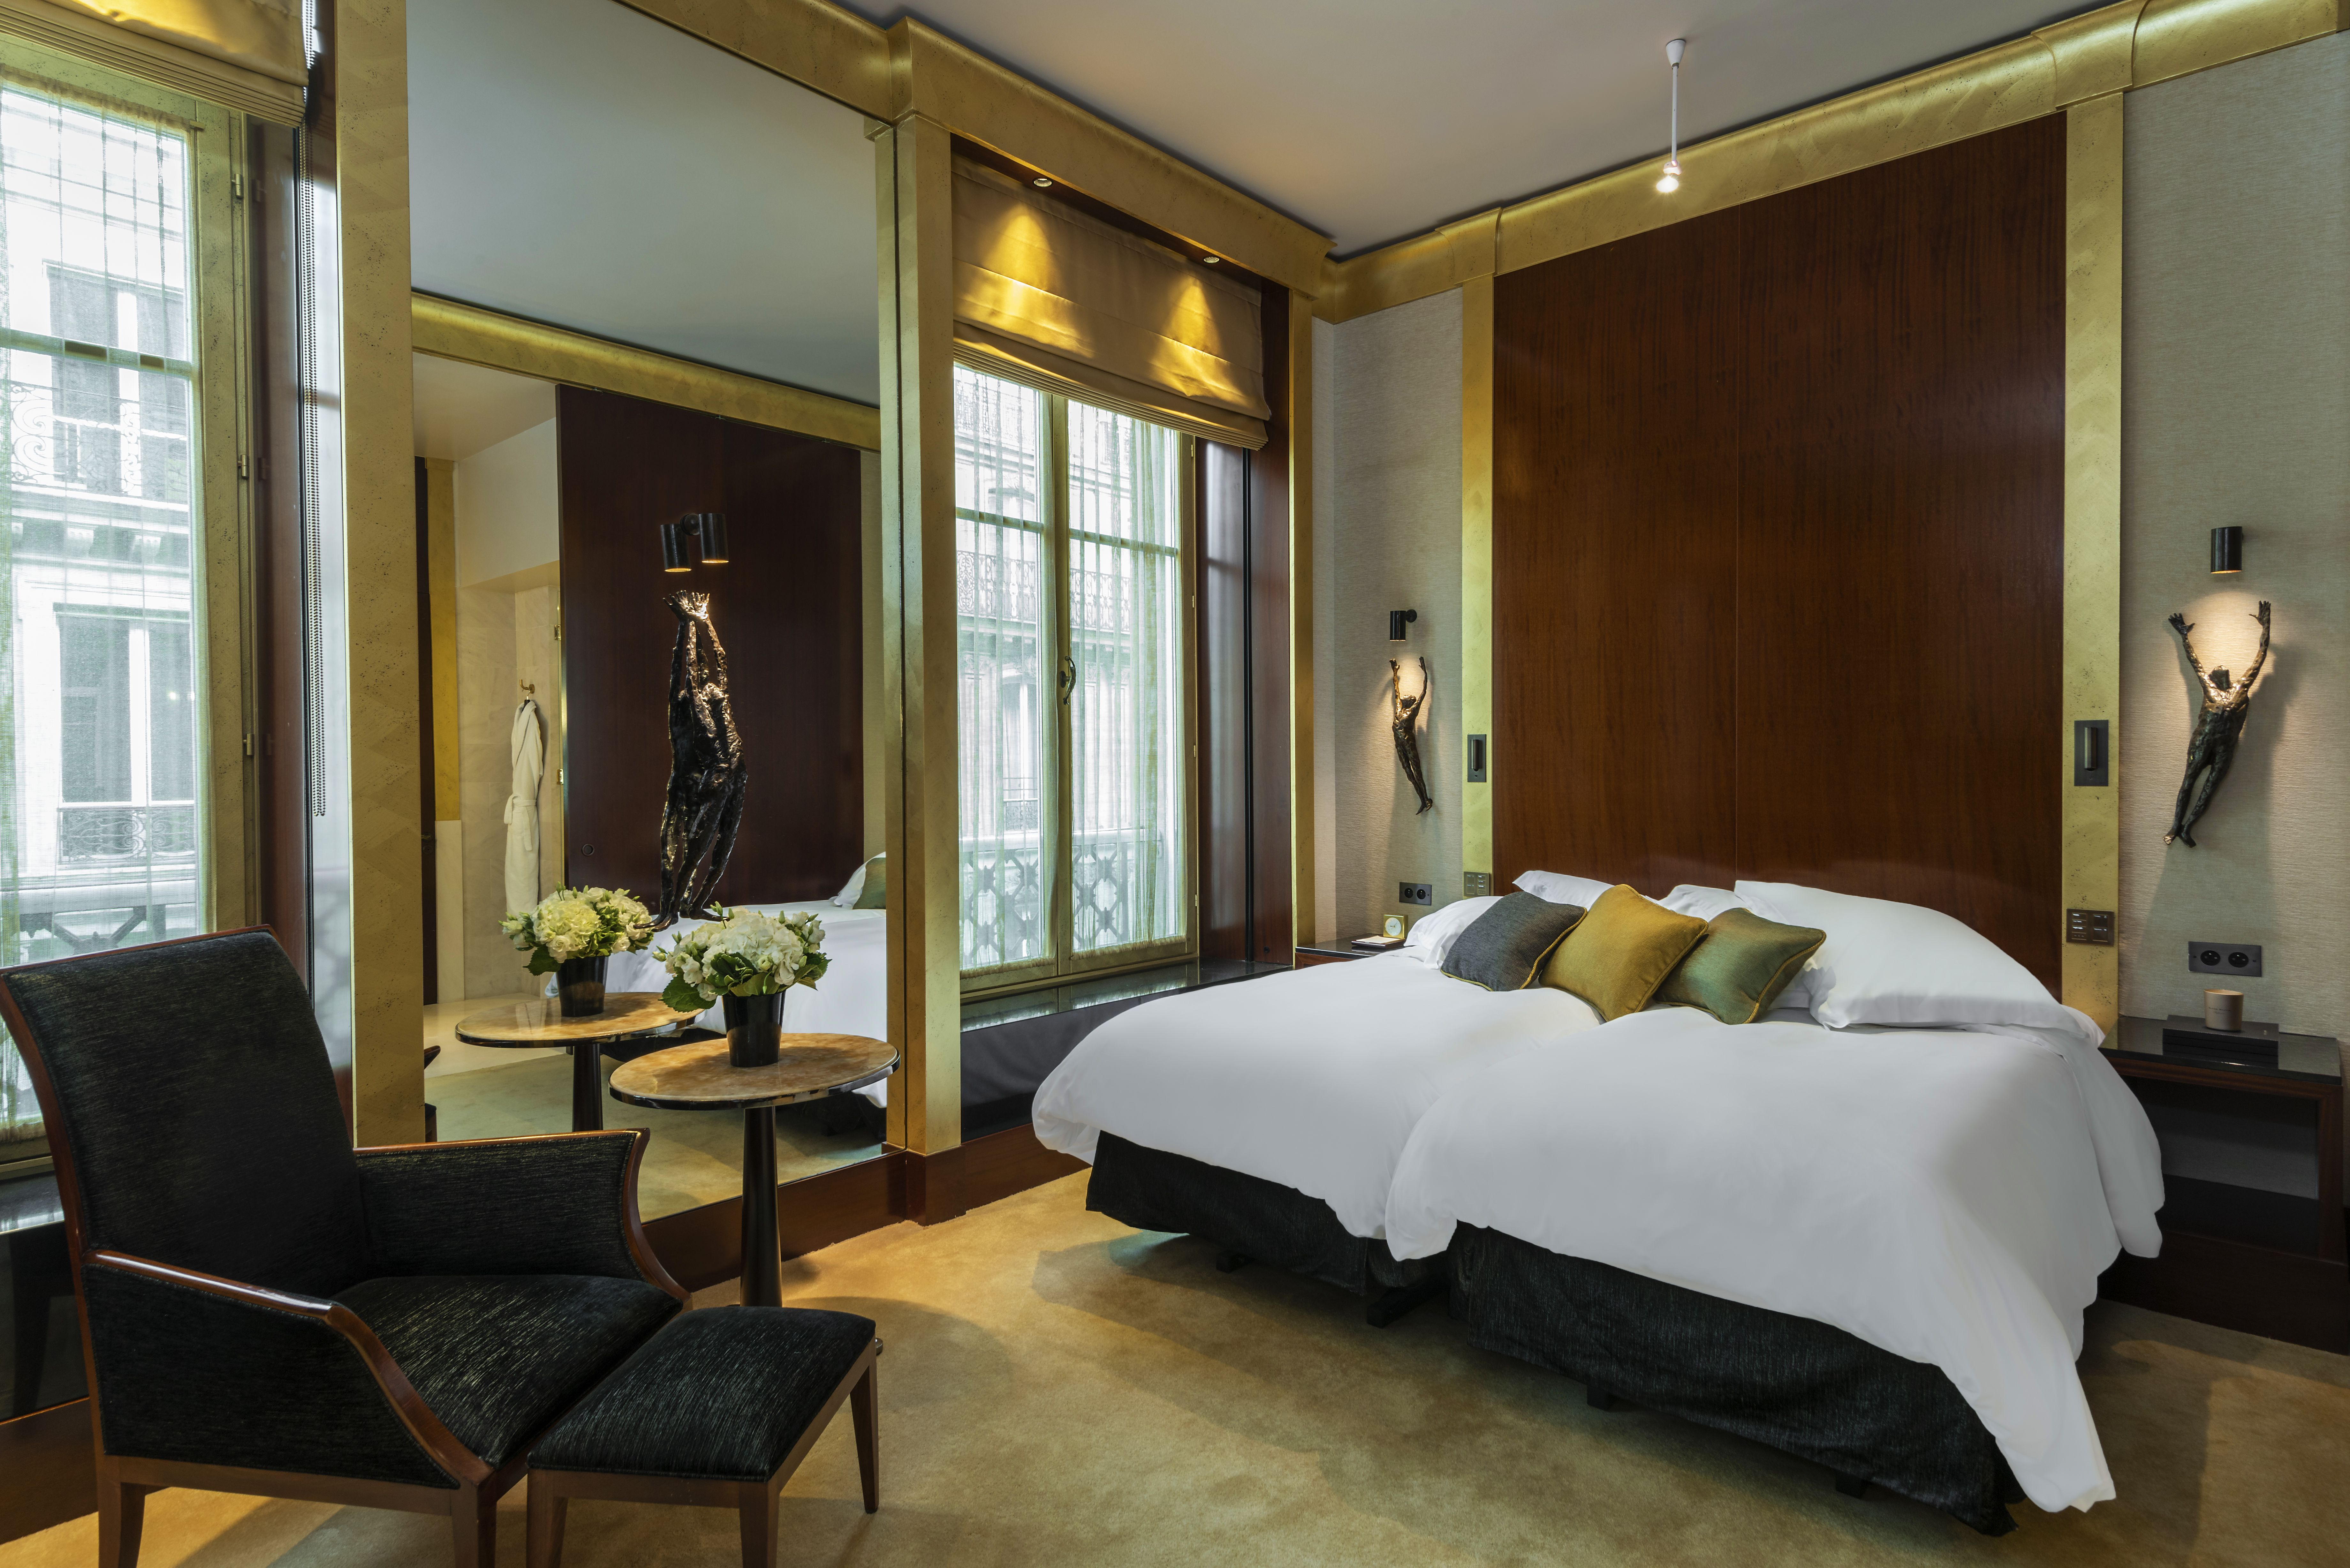 Top Hotel Stocks for Q4 2020